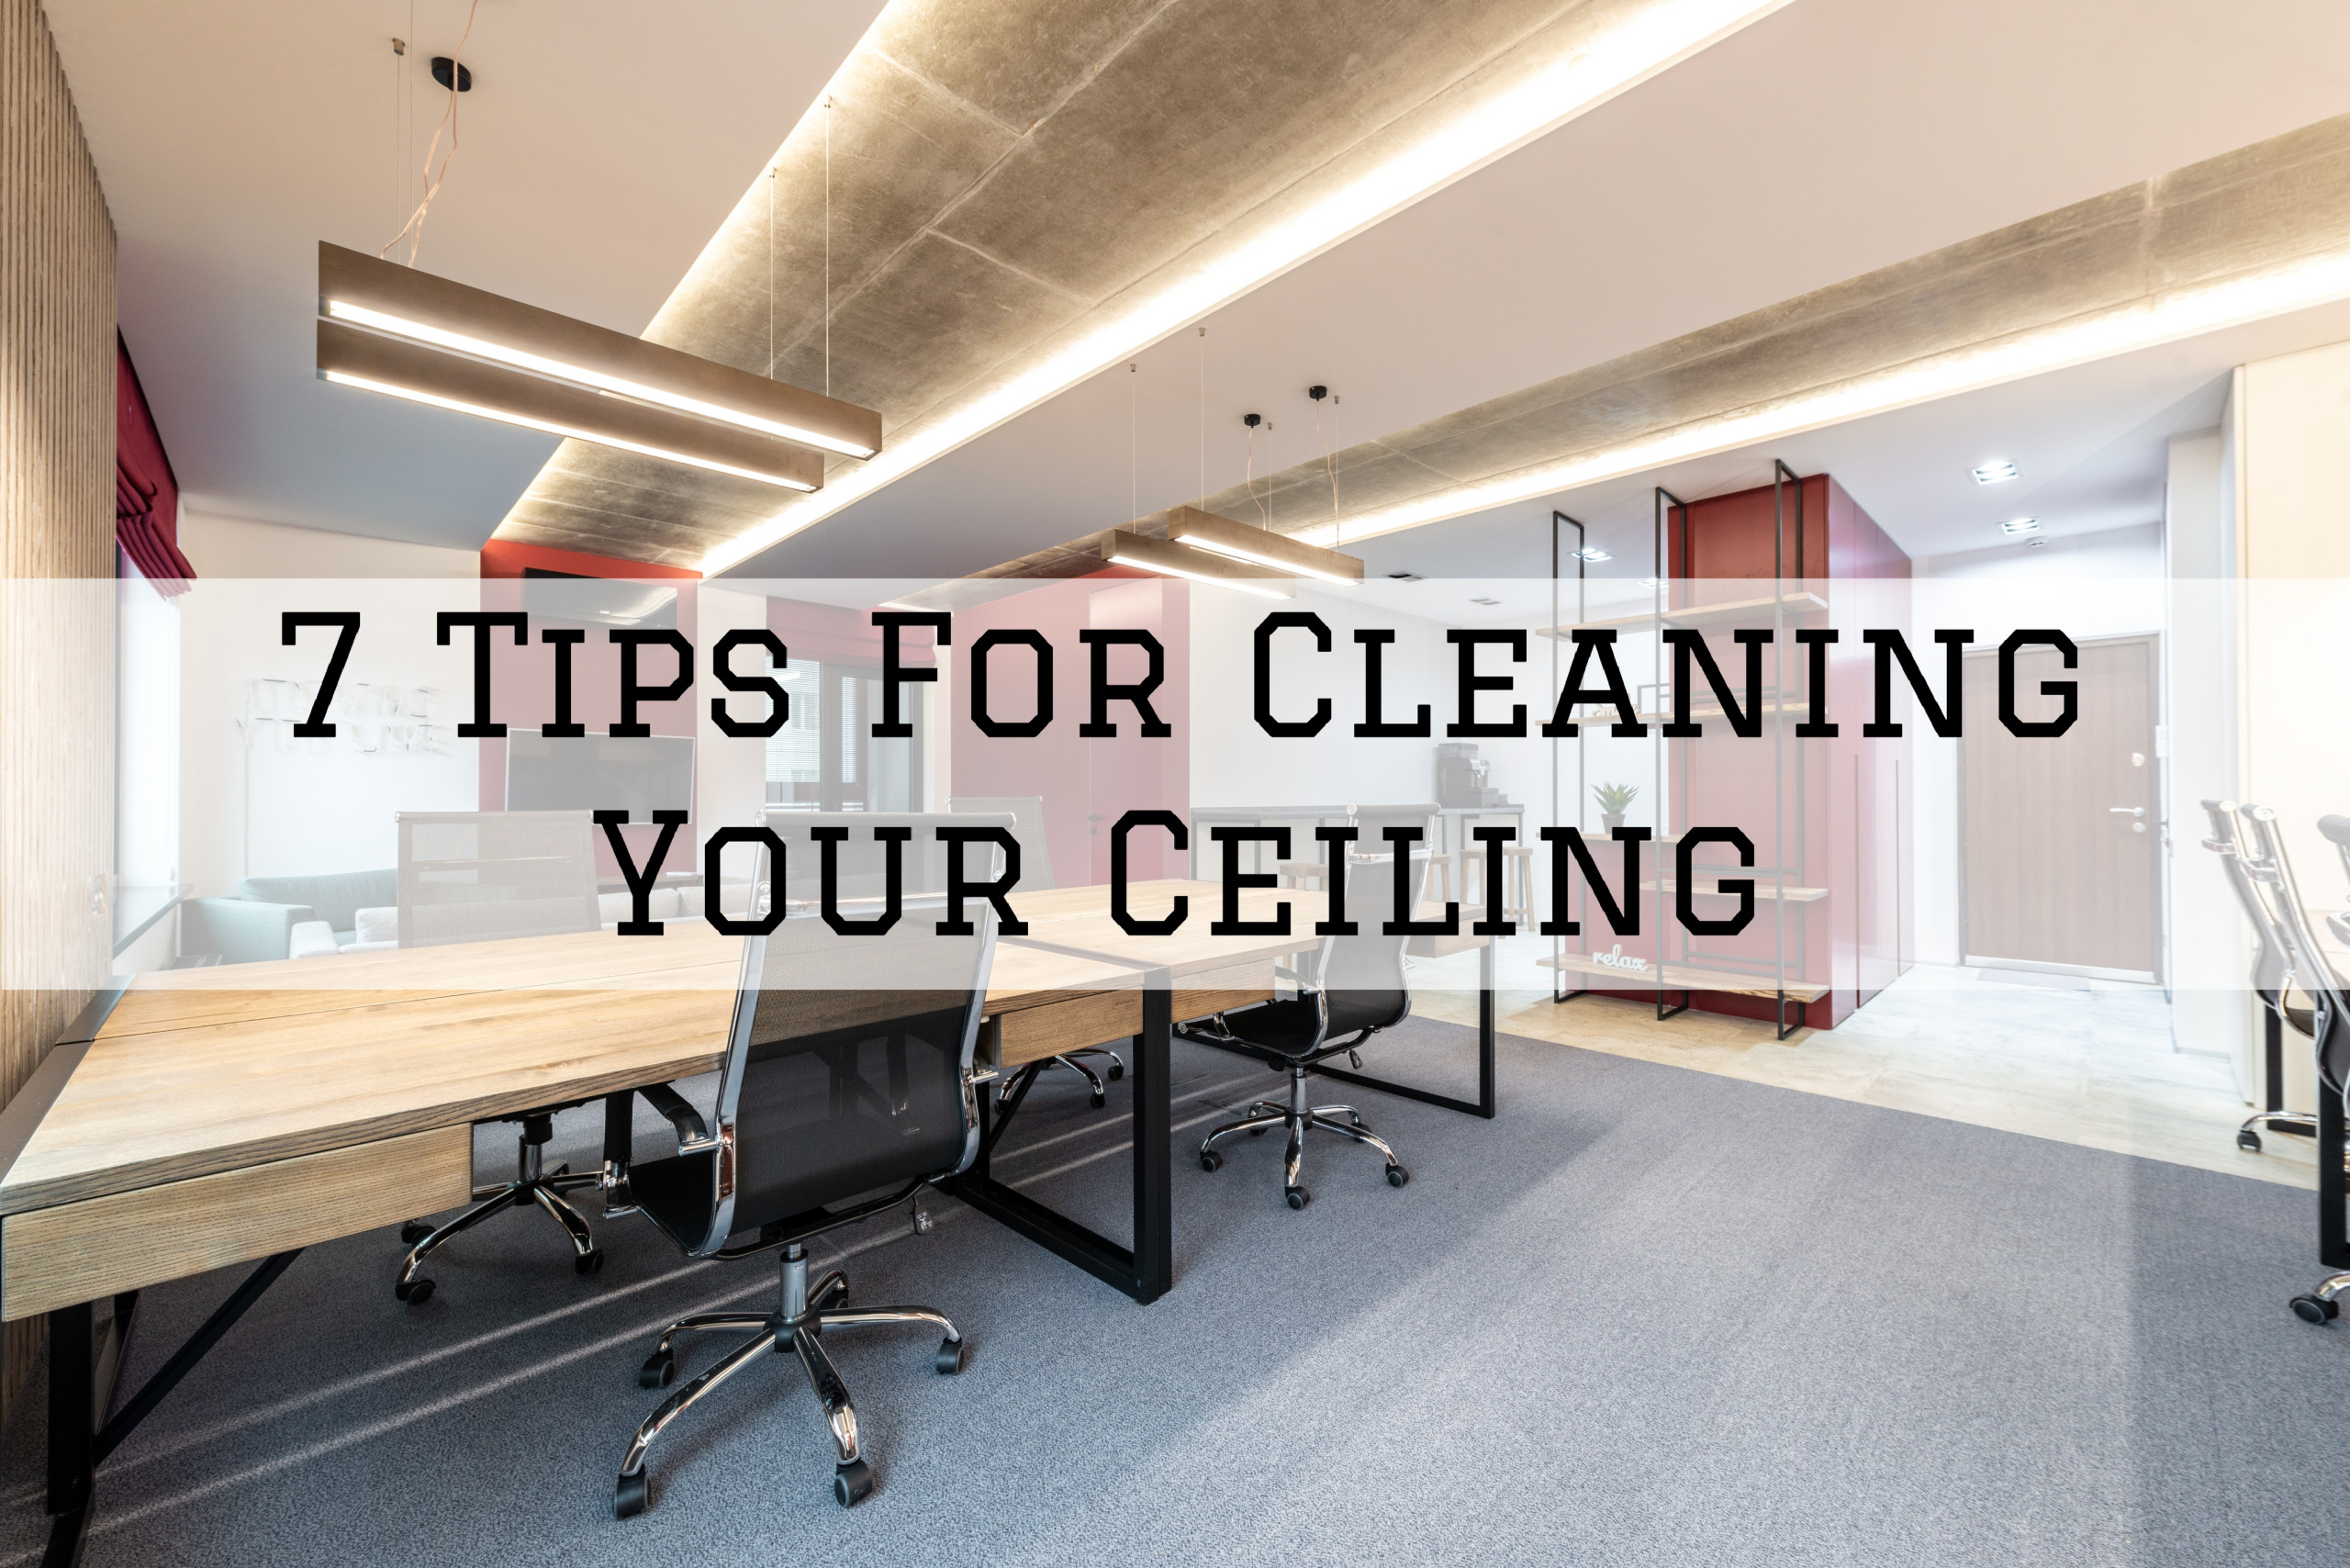 07-06-2021 Steves Quality Painting And Washing Green Lake WI tips for cleaning your ceiling